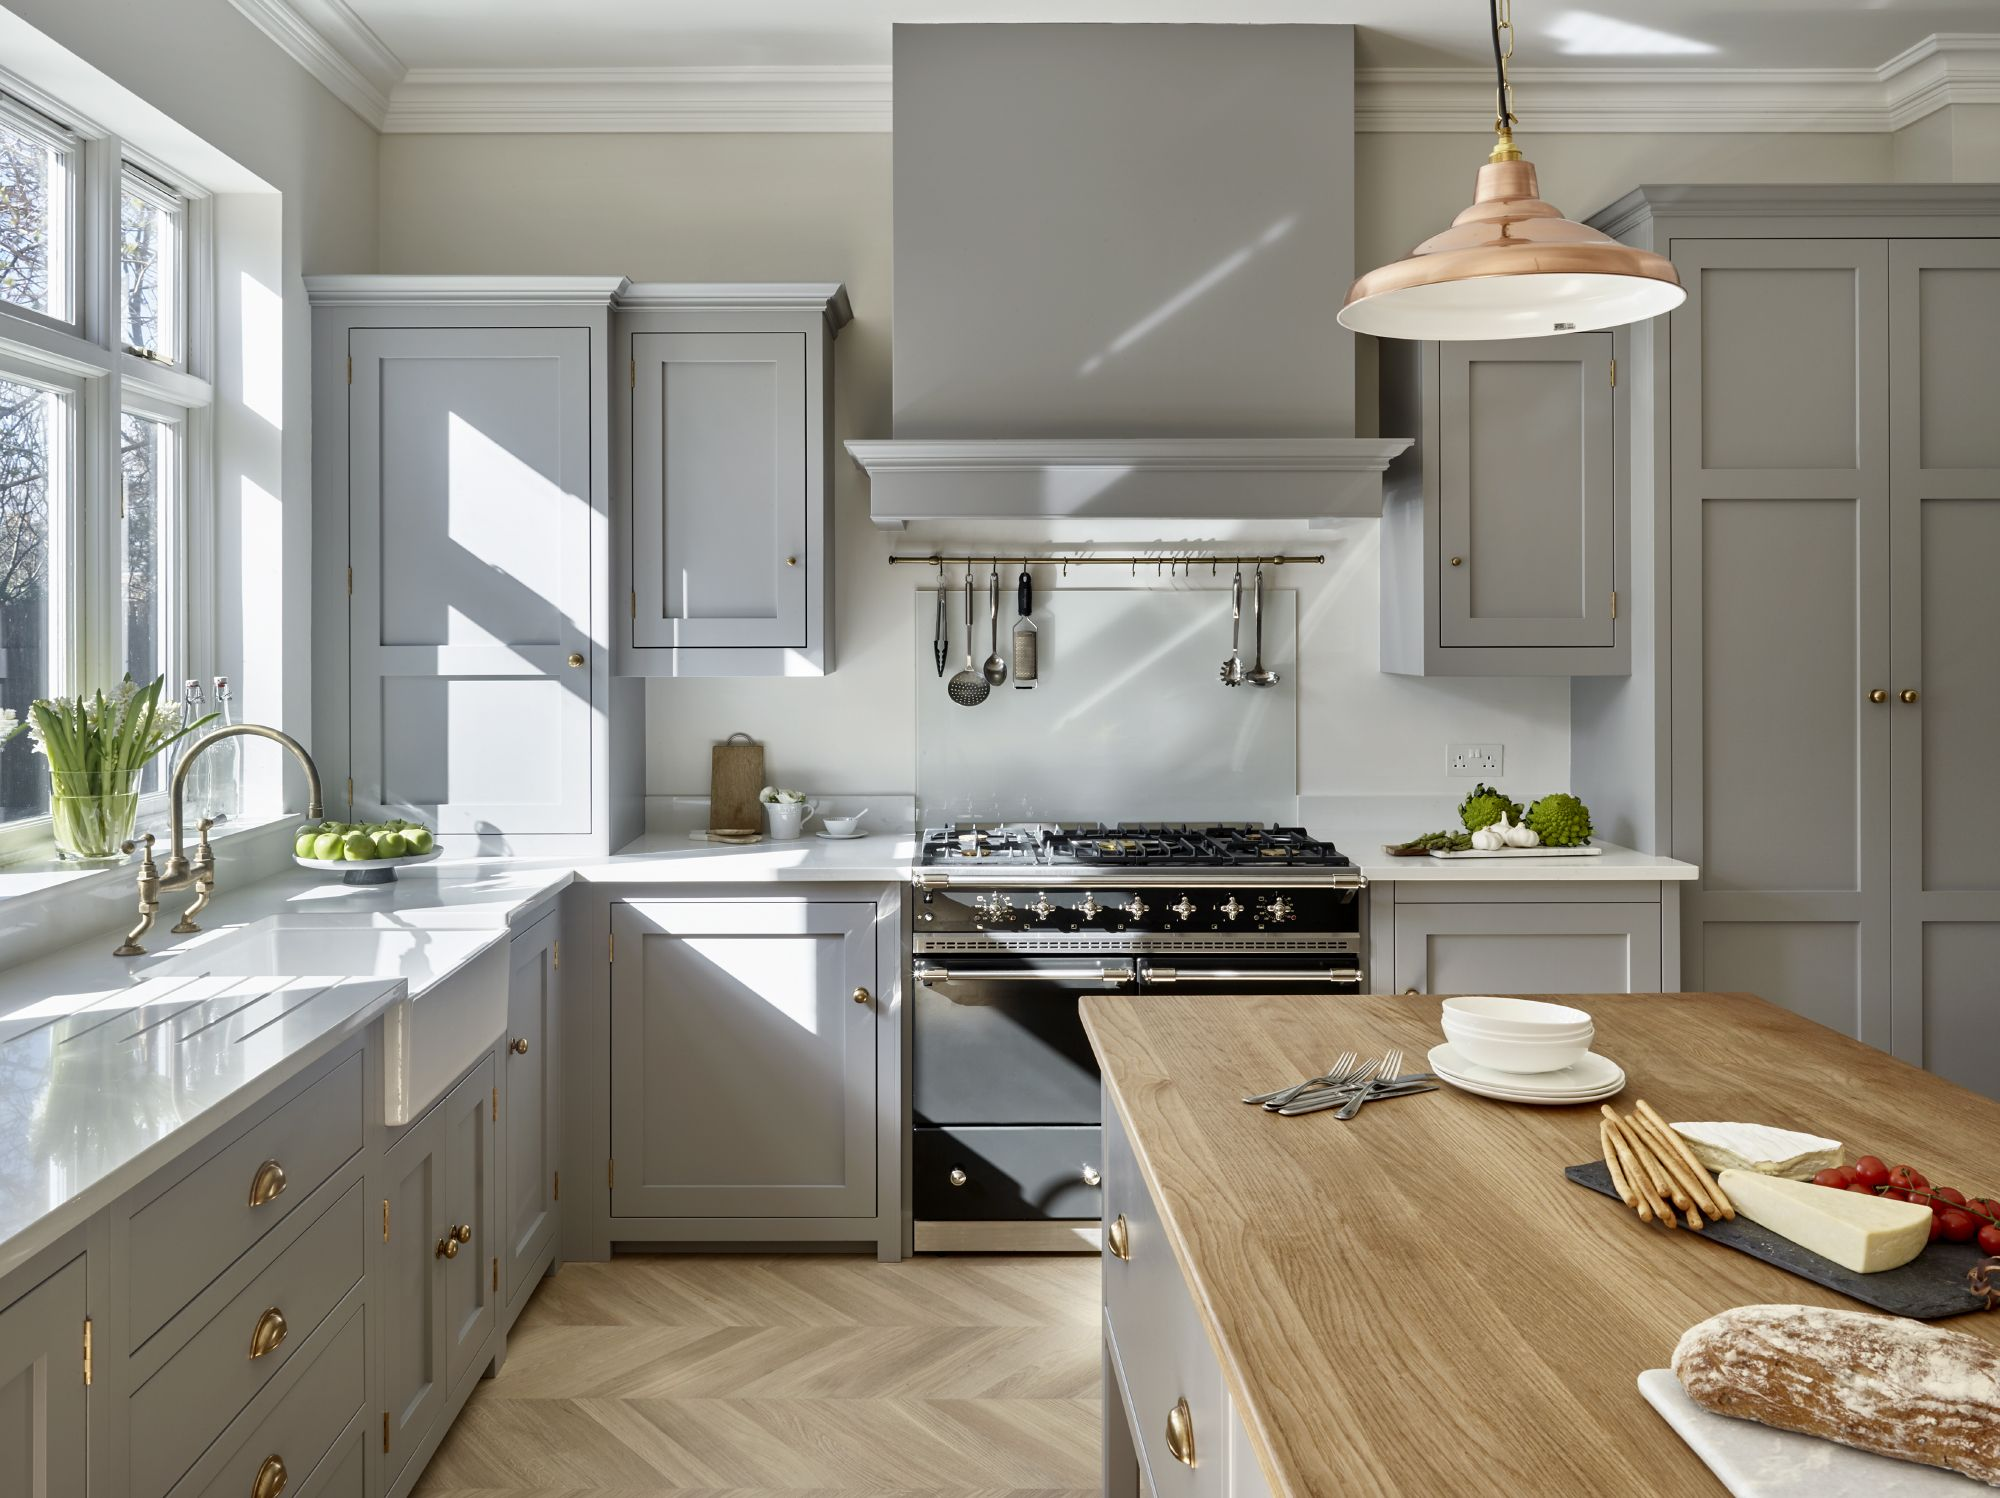 Traditional Country Kitchen With Cabinets In A Modern Shade Of